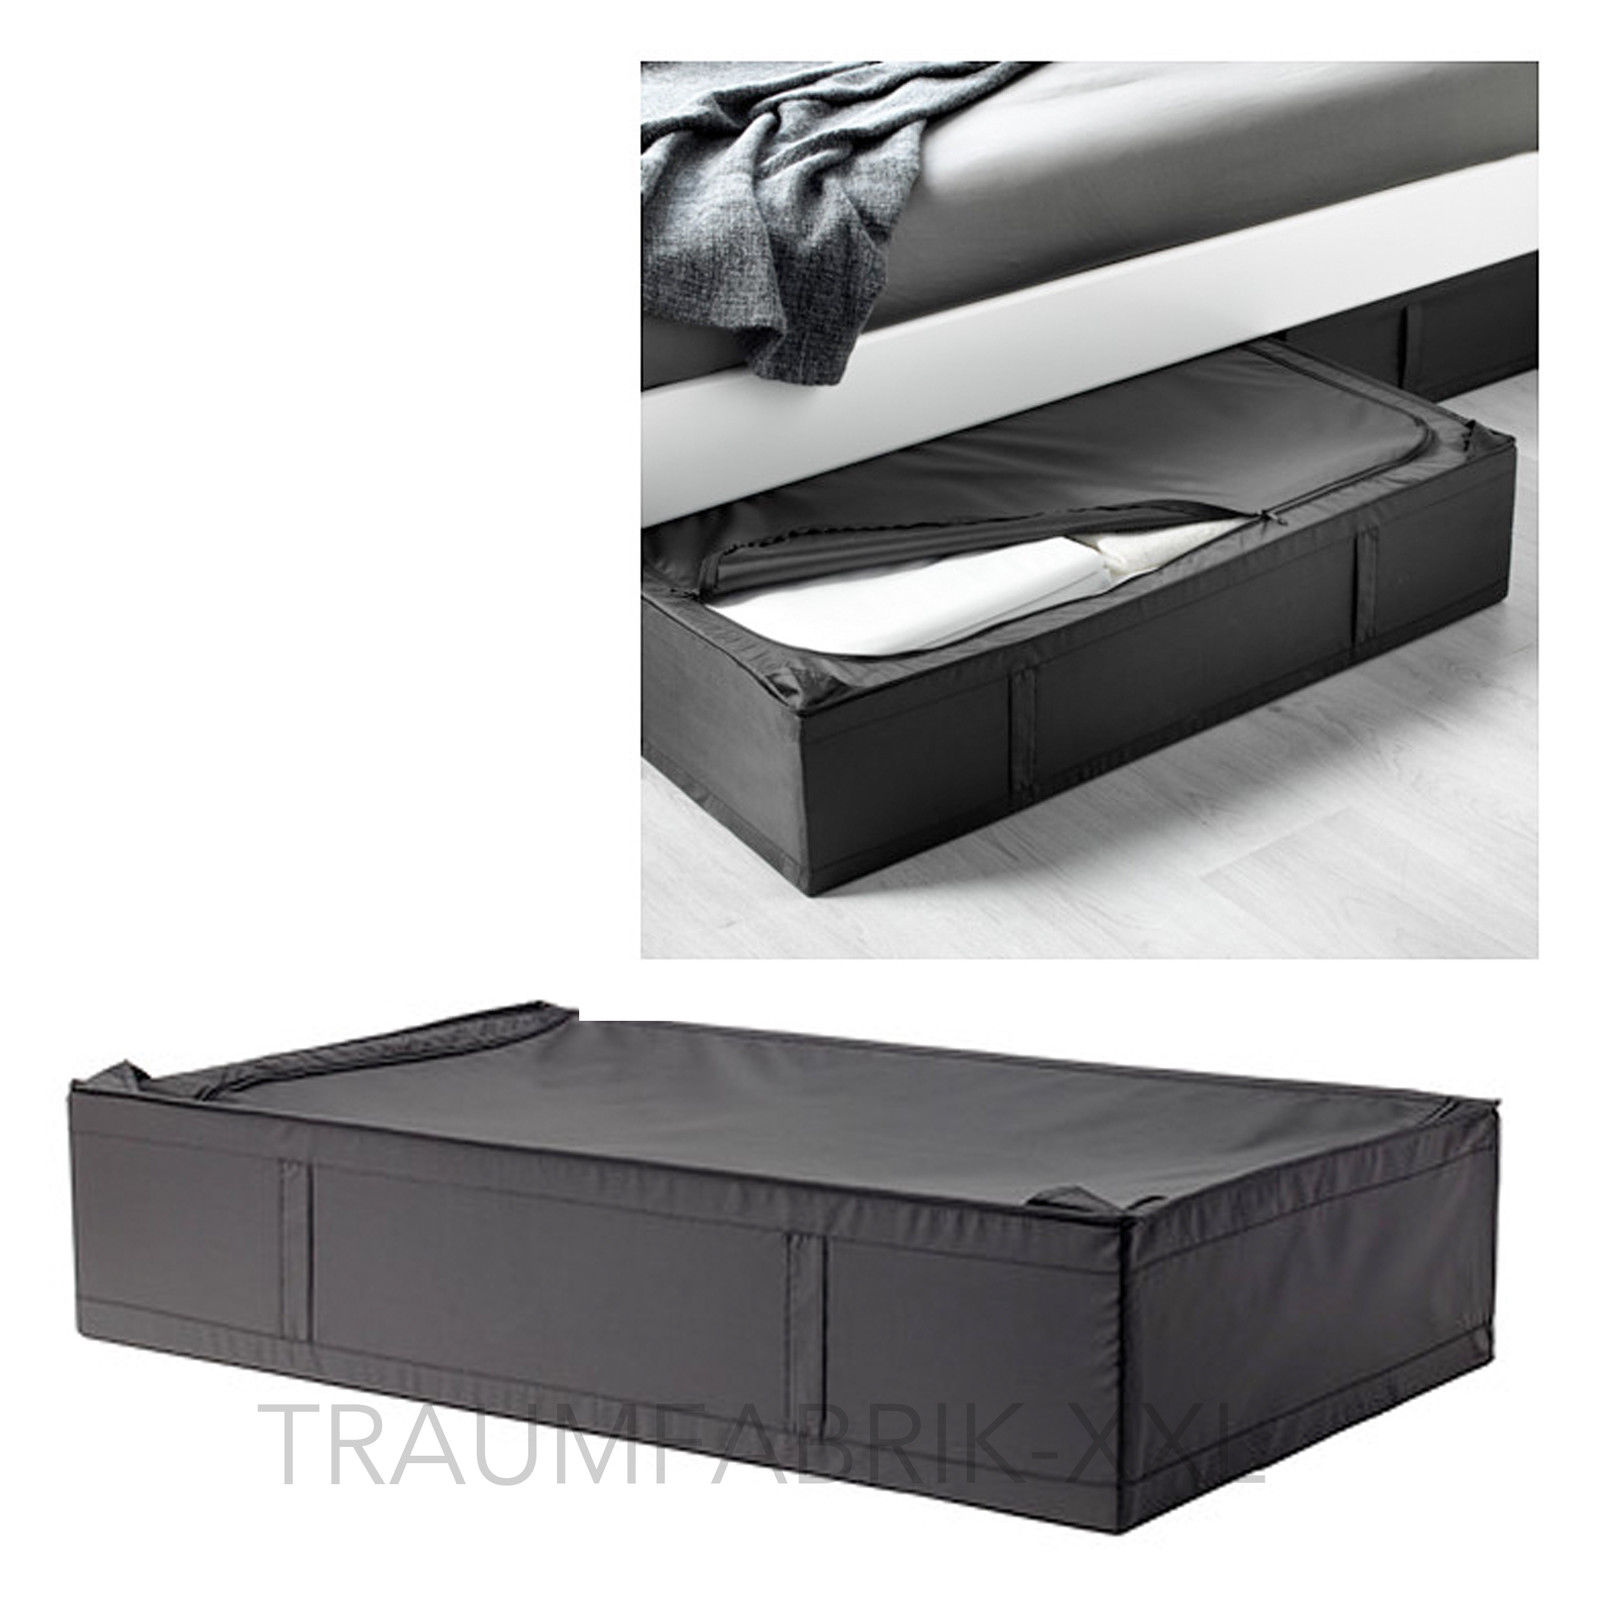 ikea skubb tasche organizer aufbewahrungsbox unterbett aufbewahrung schwarz neu traumfabrik xxl. Black Bedroom Furniture Sets. Home Design Ideas